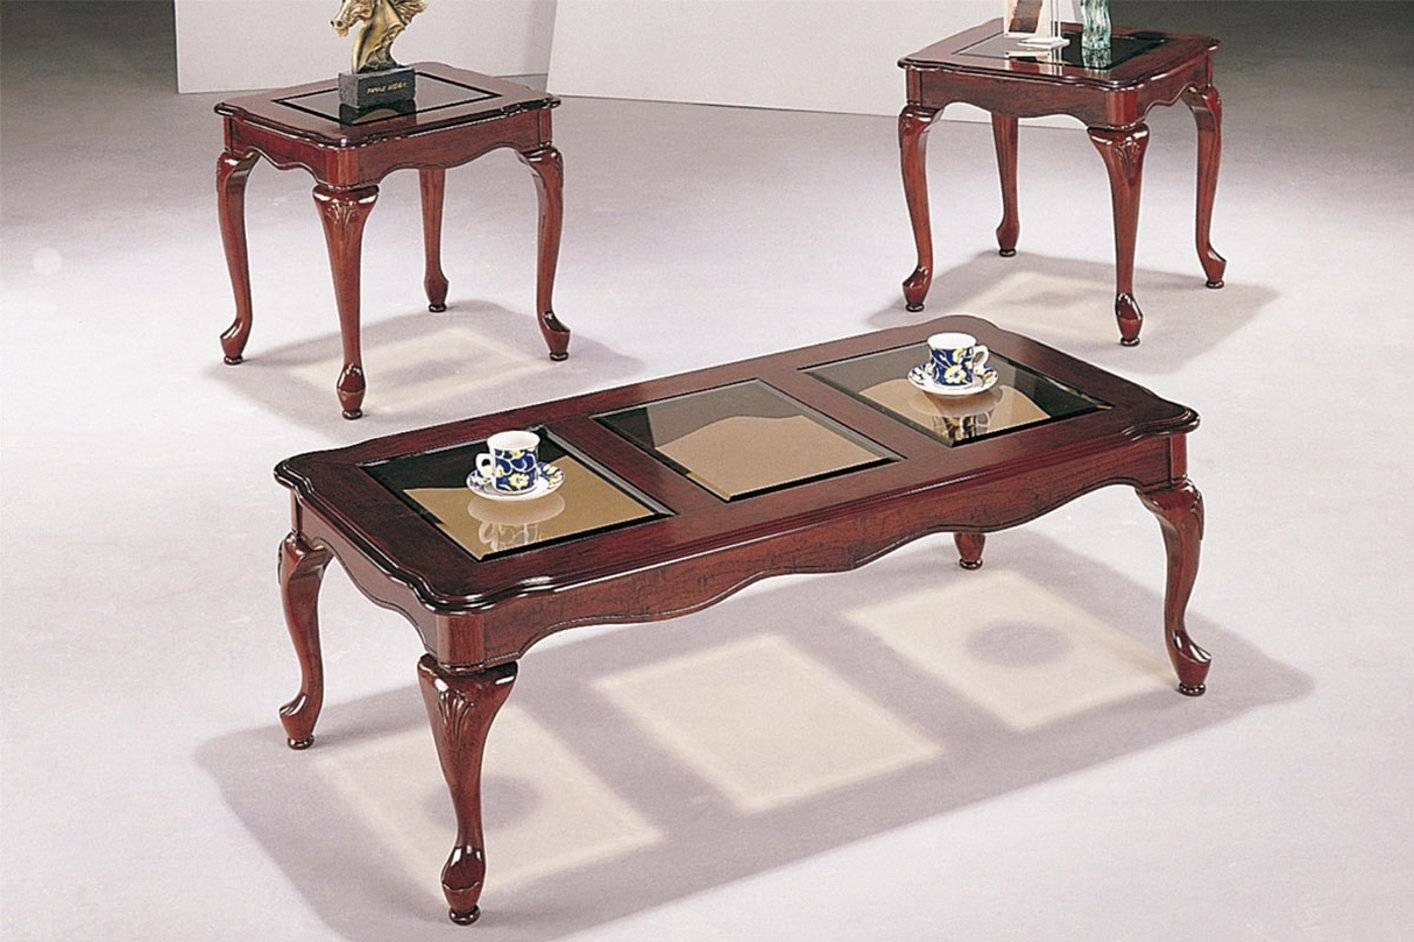 Poundex F3088 Brown Wood Coffee Table Set - Steal-A-Sofa Furniture inside Cherry Wood Coffee Table Sets (Image 28 of 30)